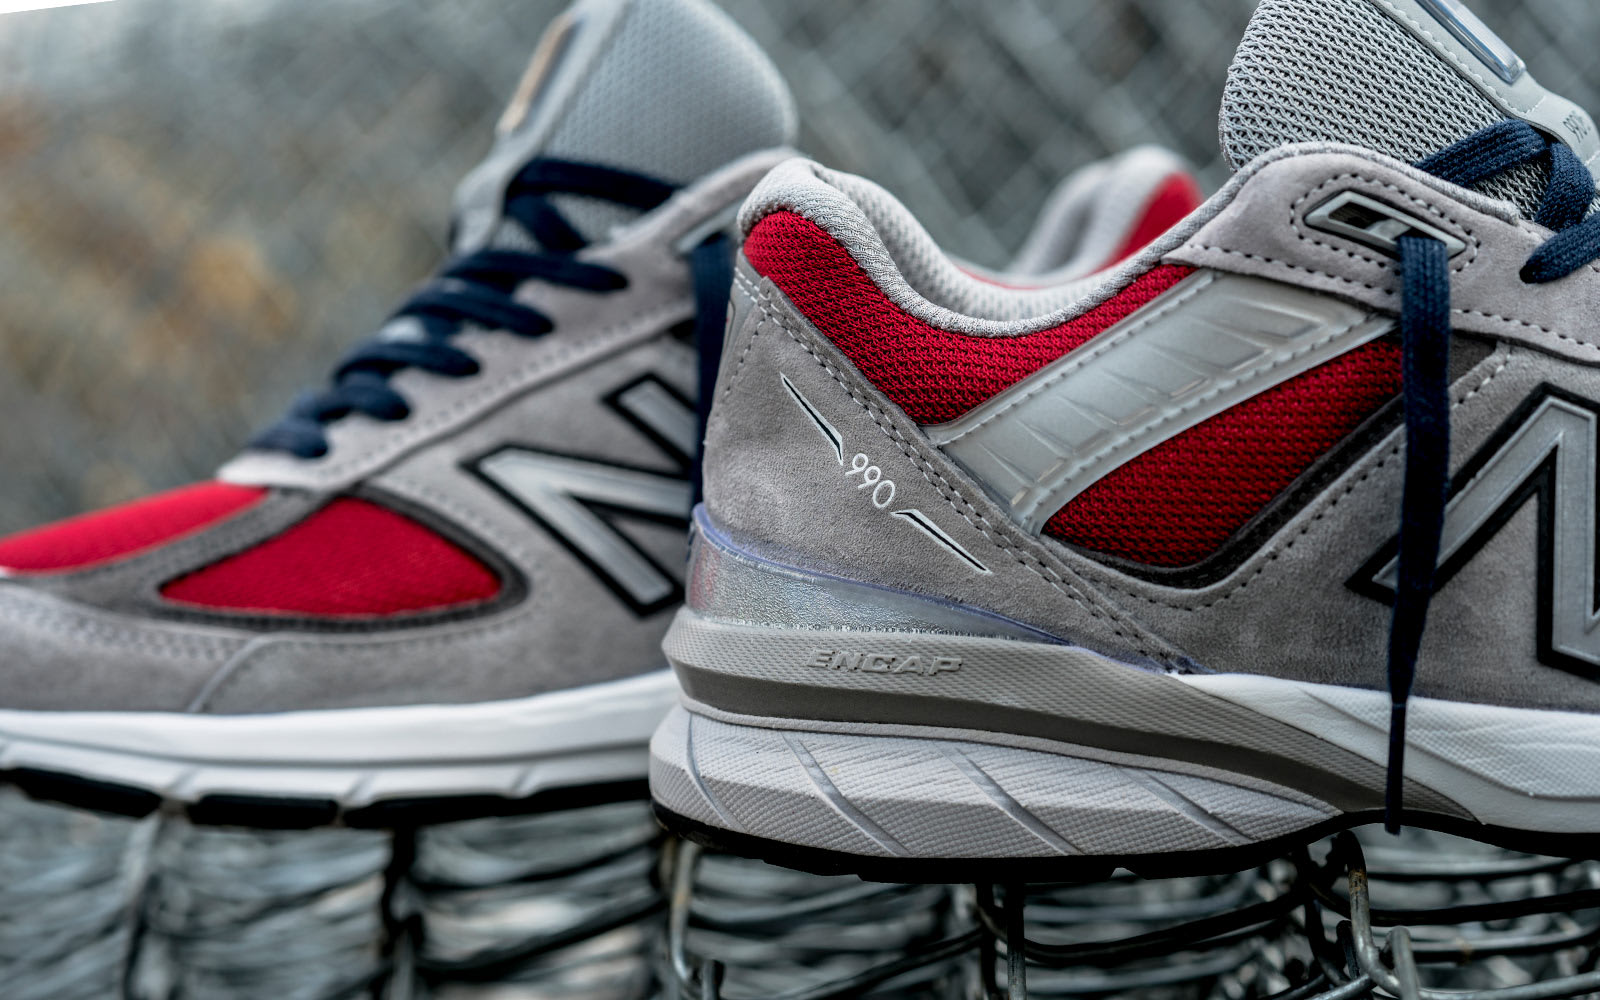 ycmc-new-balance-990v5-loyalty